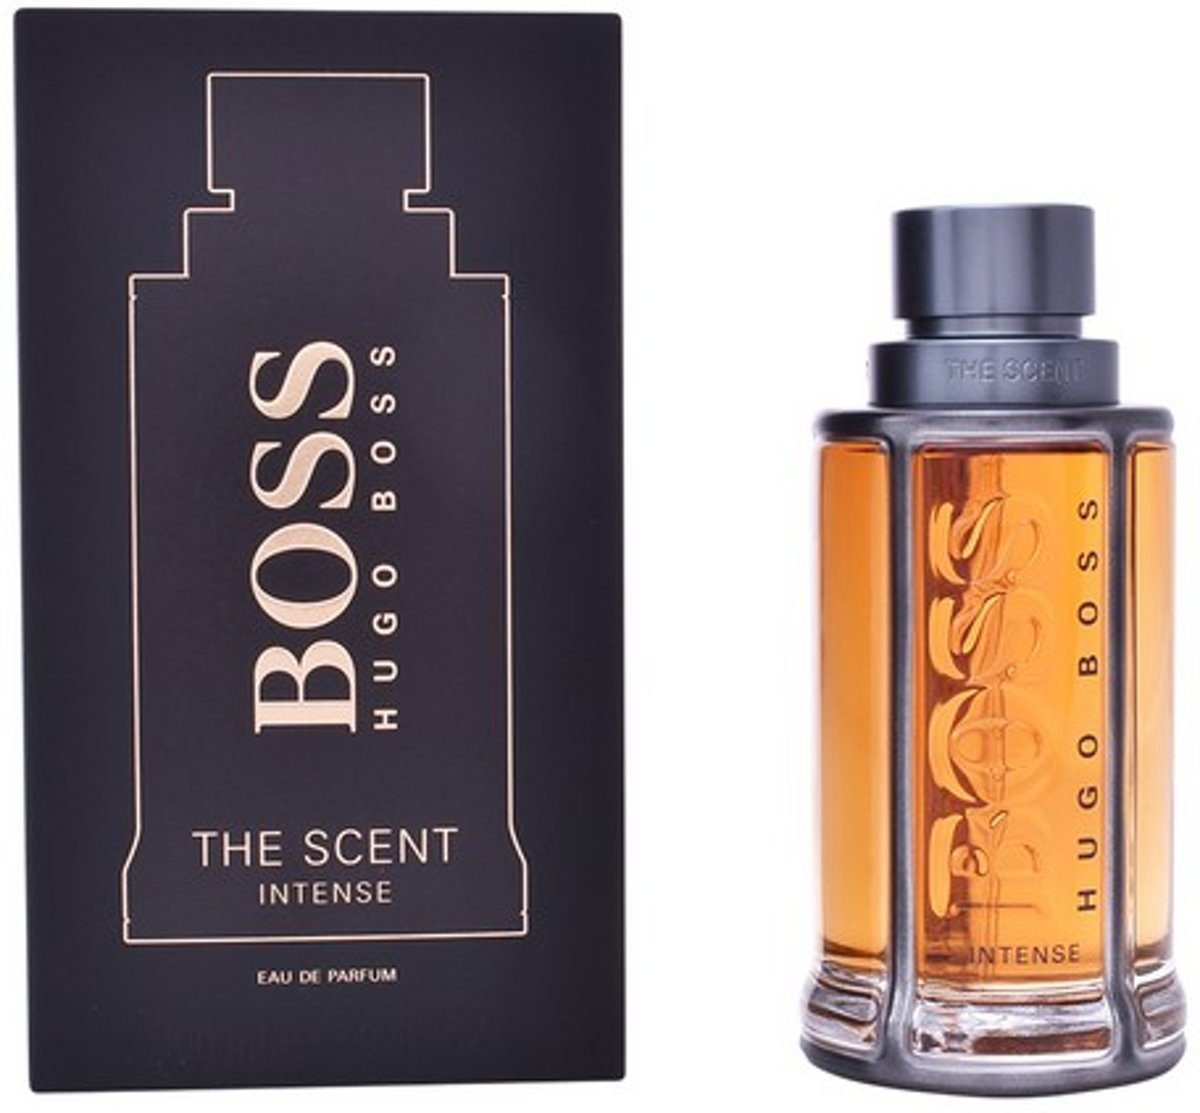 Hugo Boss - Eau de parfum - The Scent Intense - 100 ml